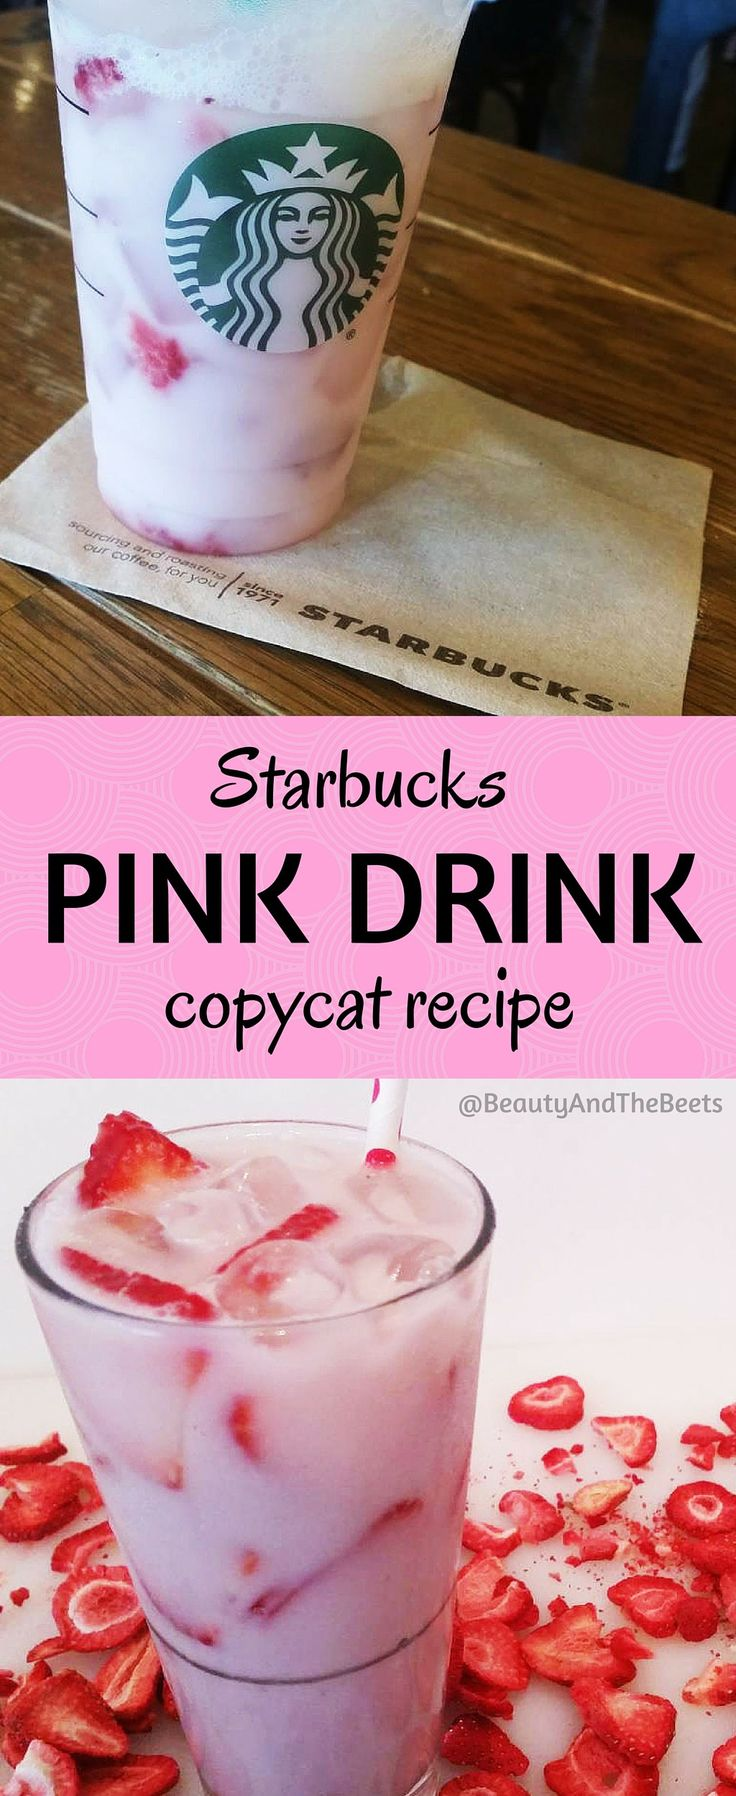 Starbucks Pink Drink recipe #pinkdrink Beauty and the Beets pin